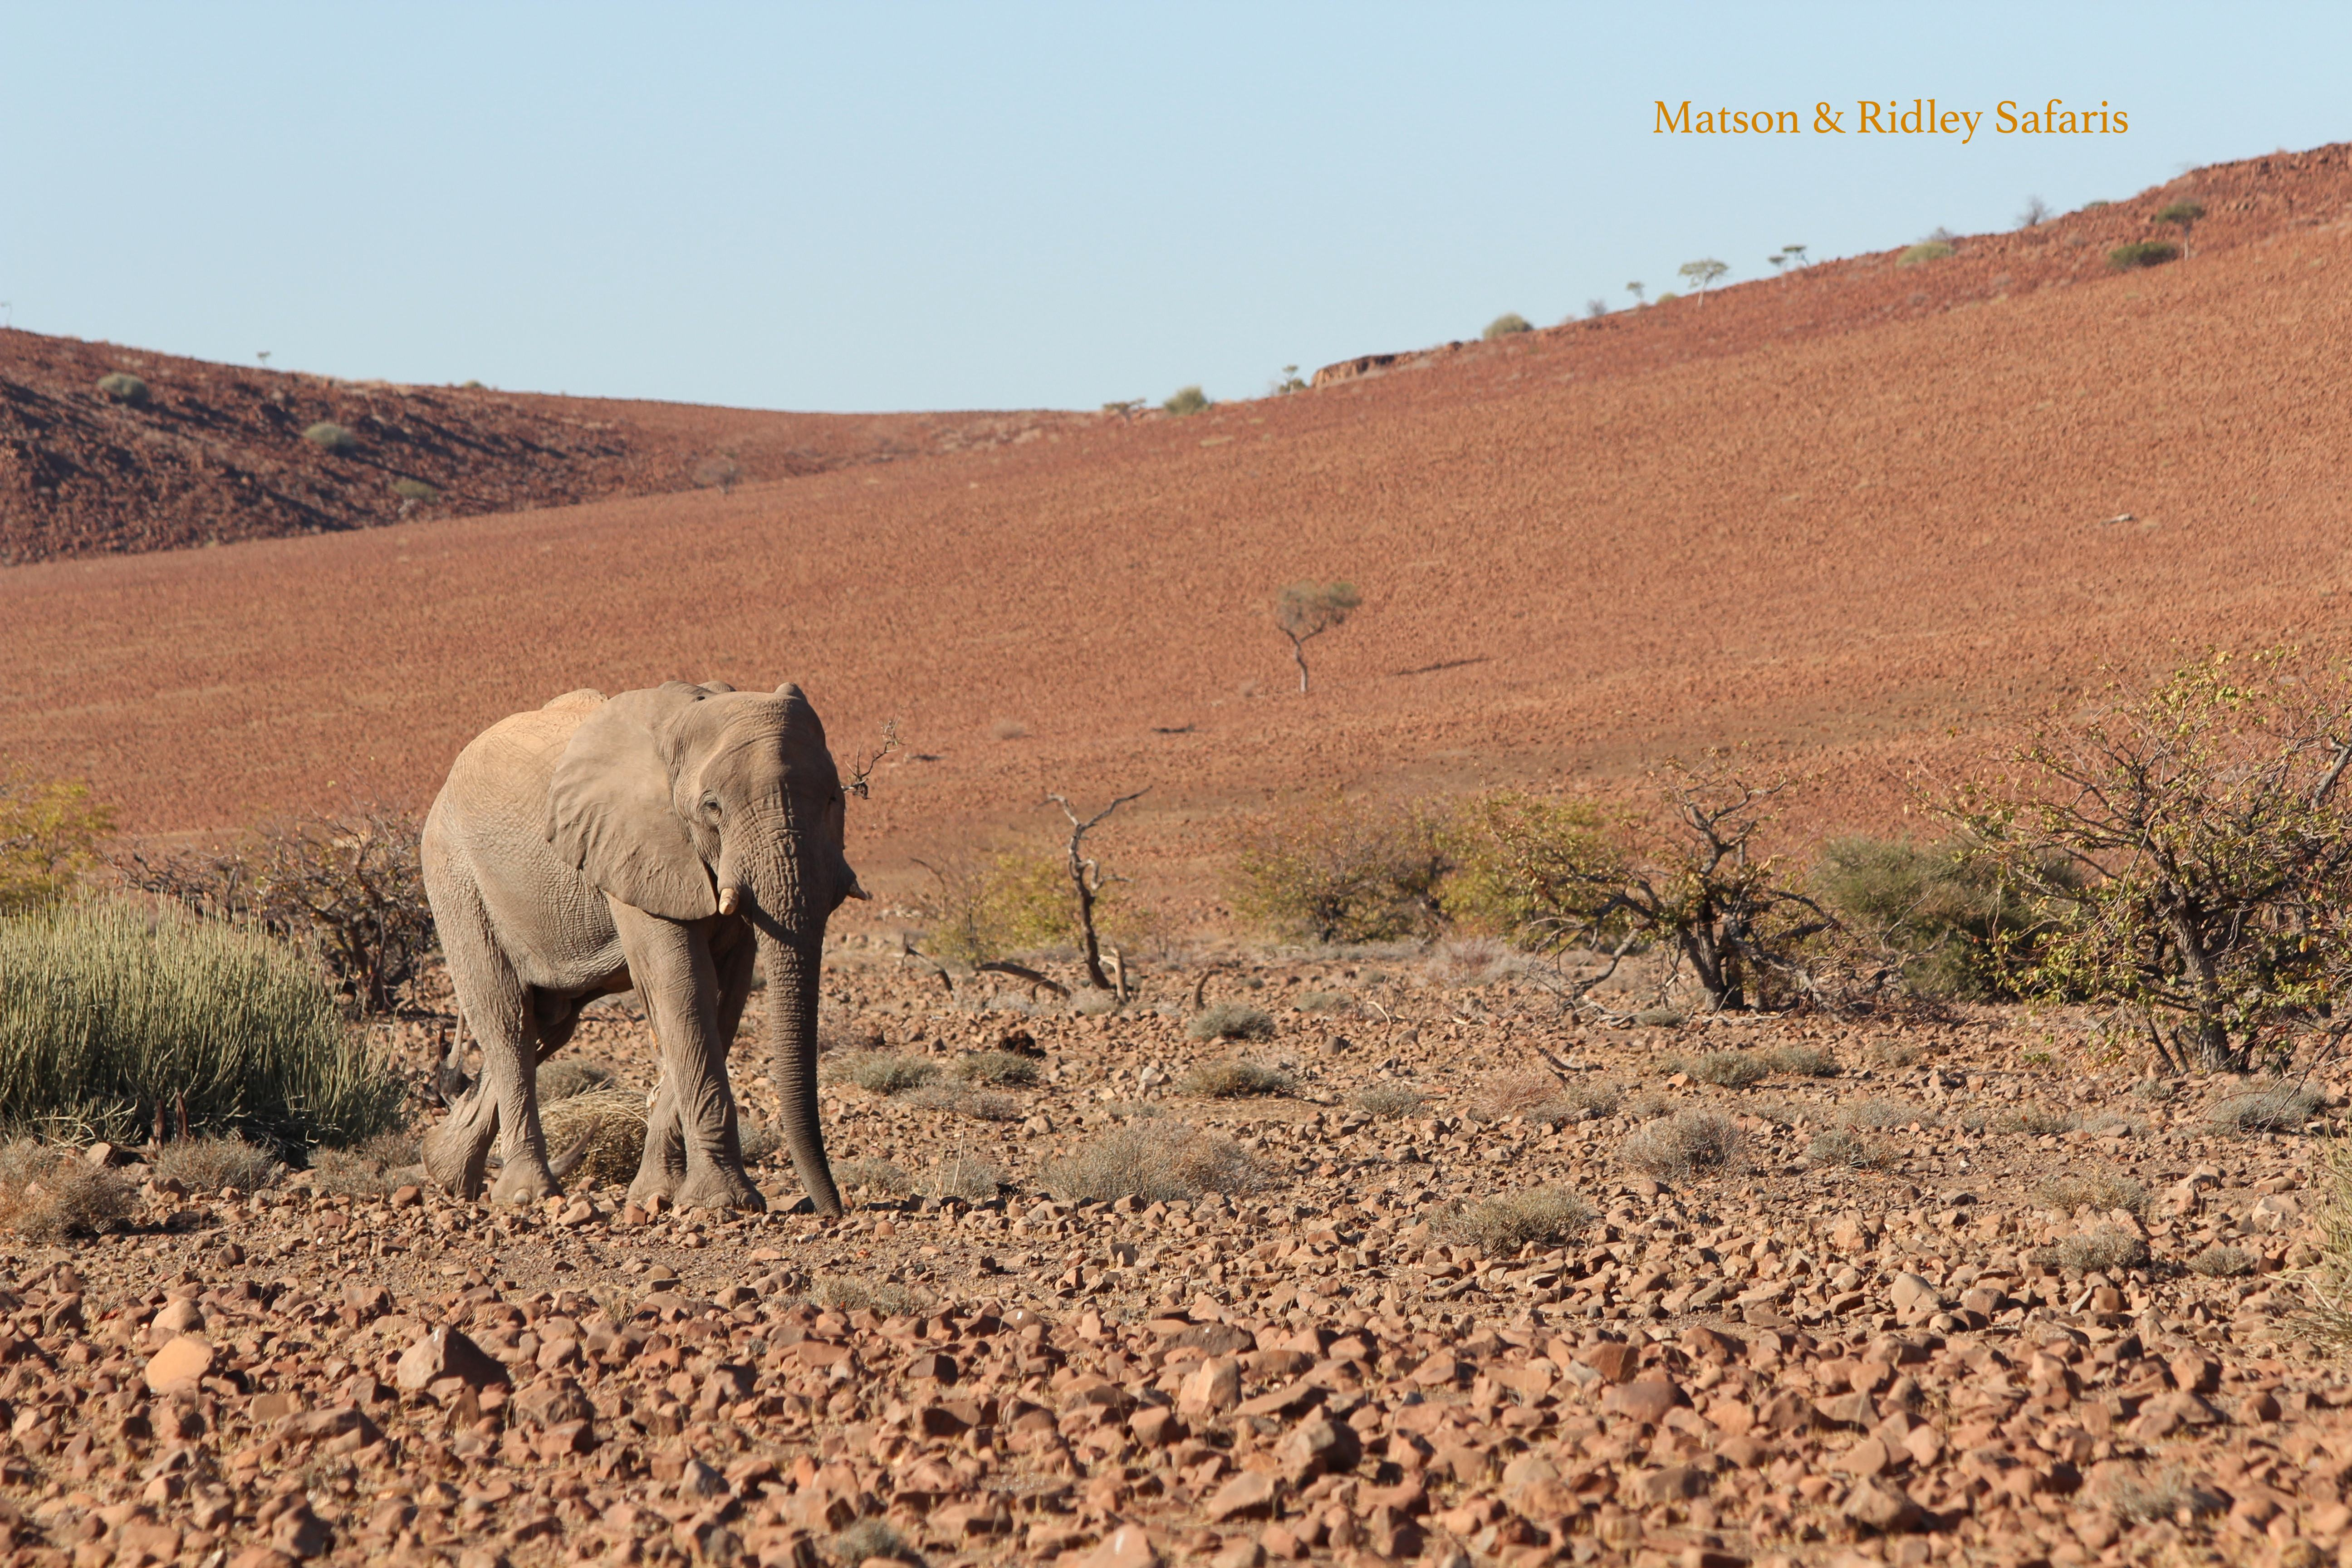 The desert dwelling elephants on Namibia's north west region are perhaps the most incredible of all of Africa's elephants, having to traverse vast areas in order to find enough food to survive in their parched habitat. This photo taken on my Namibian safari near Desert Rhino Camp last year.